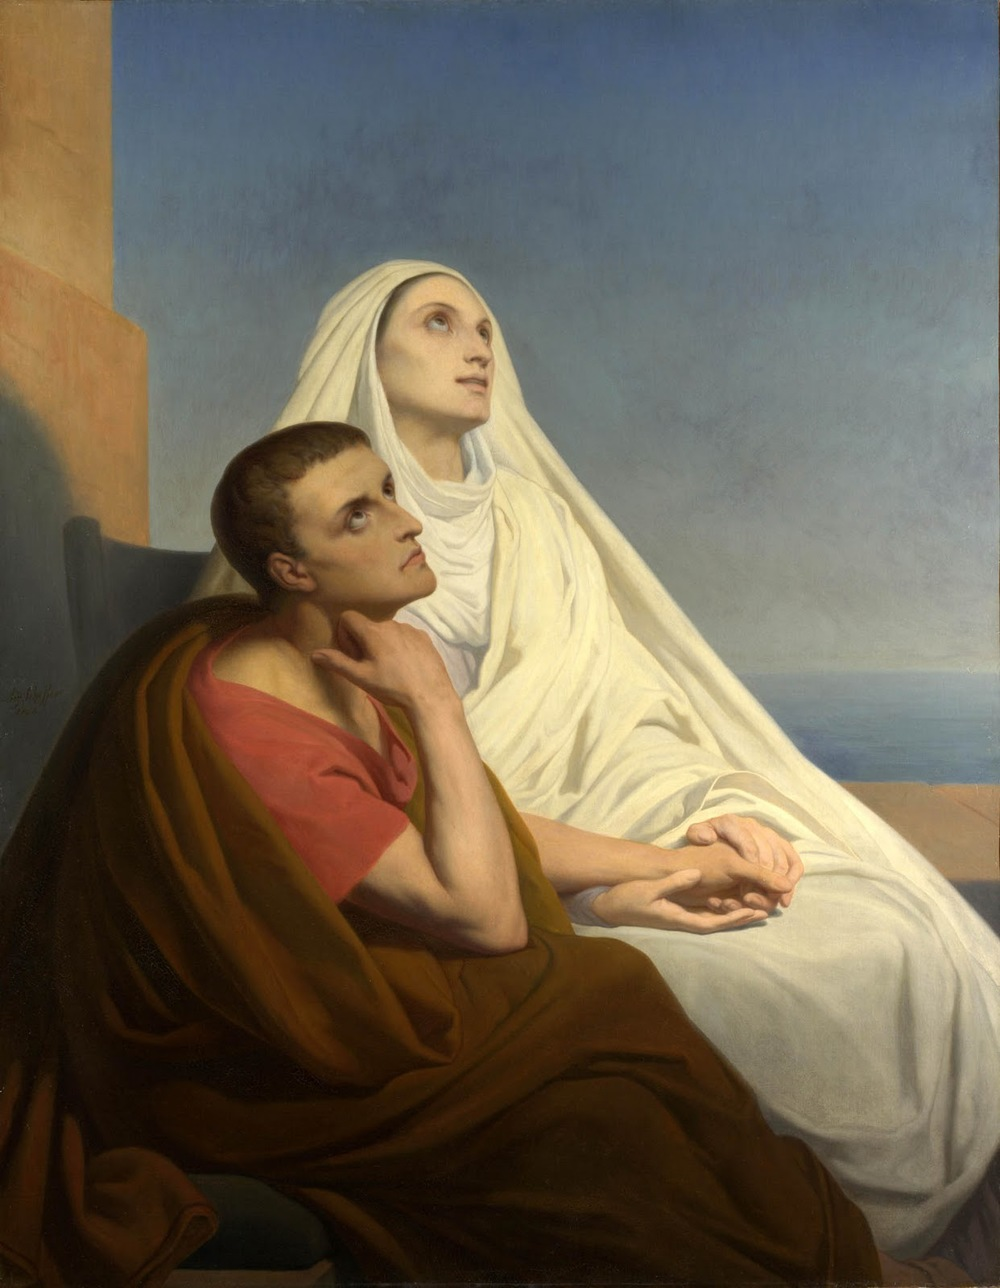 Saint Augustine and his mother Saint Monica.